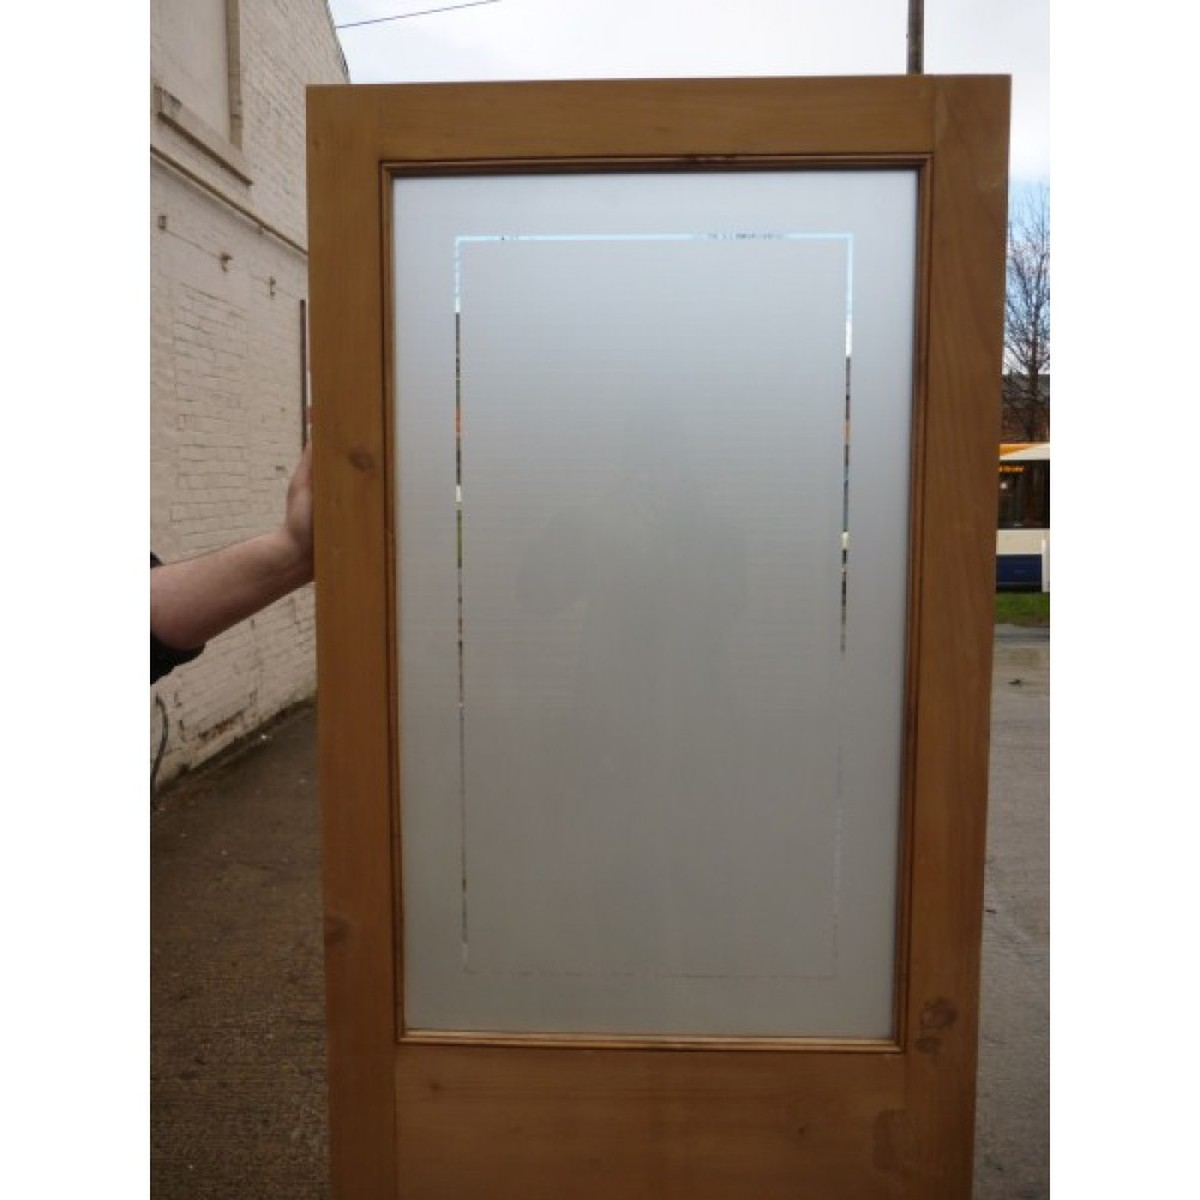 Secondhand vintage and reclaimed doors and windows for Etched glass doors